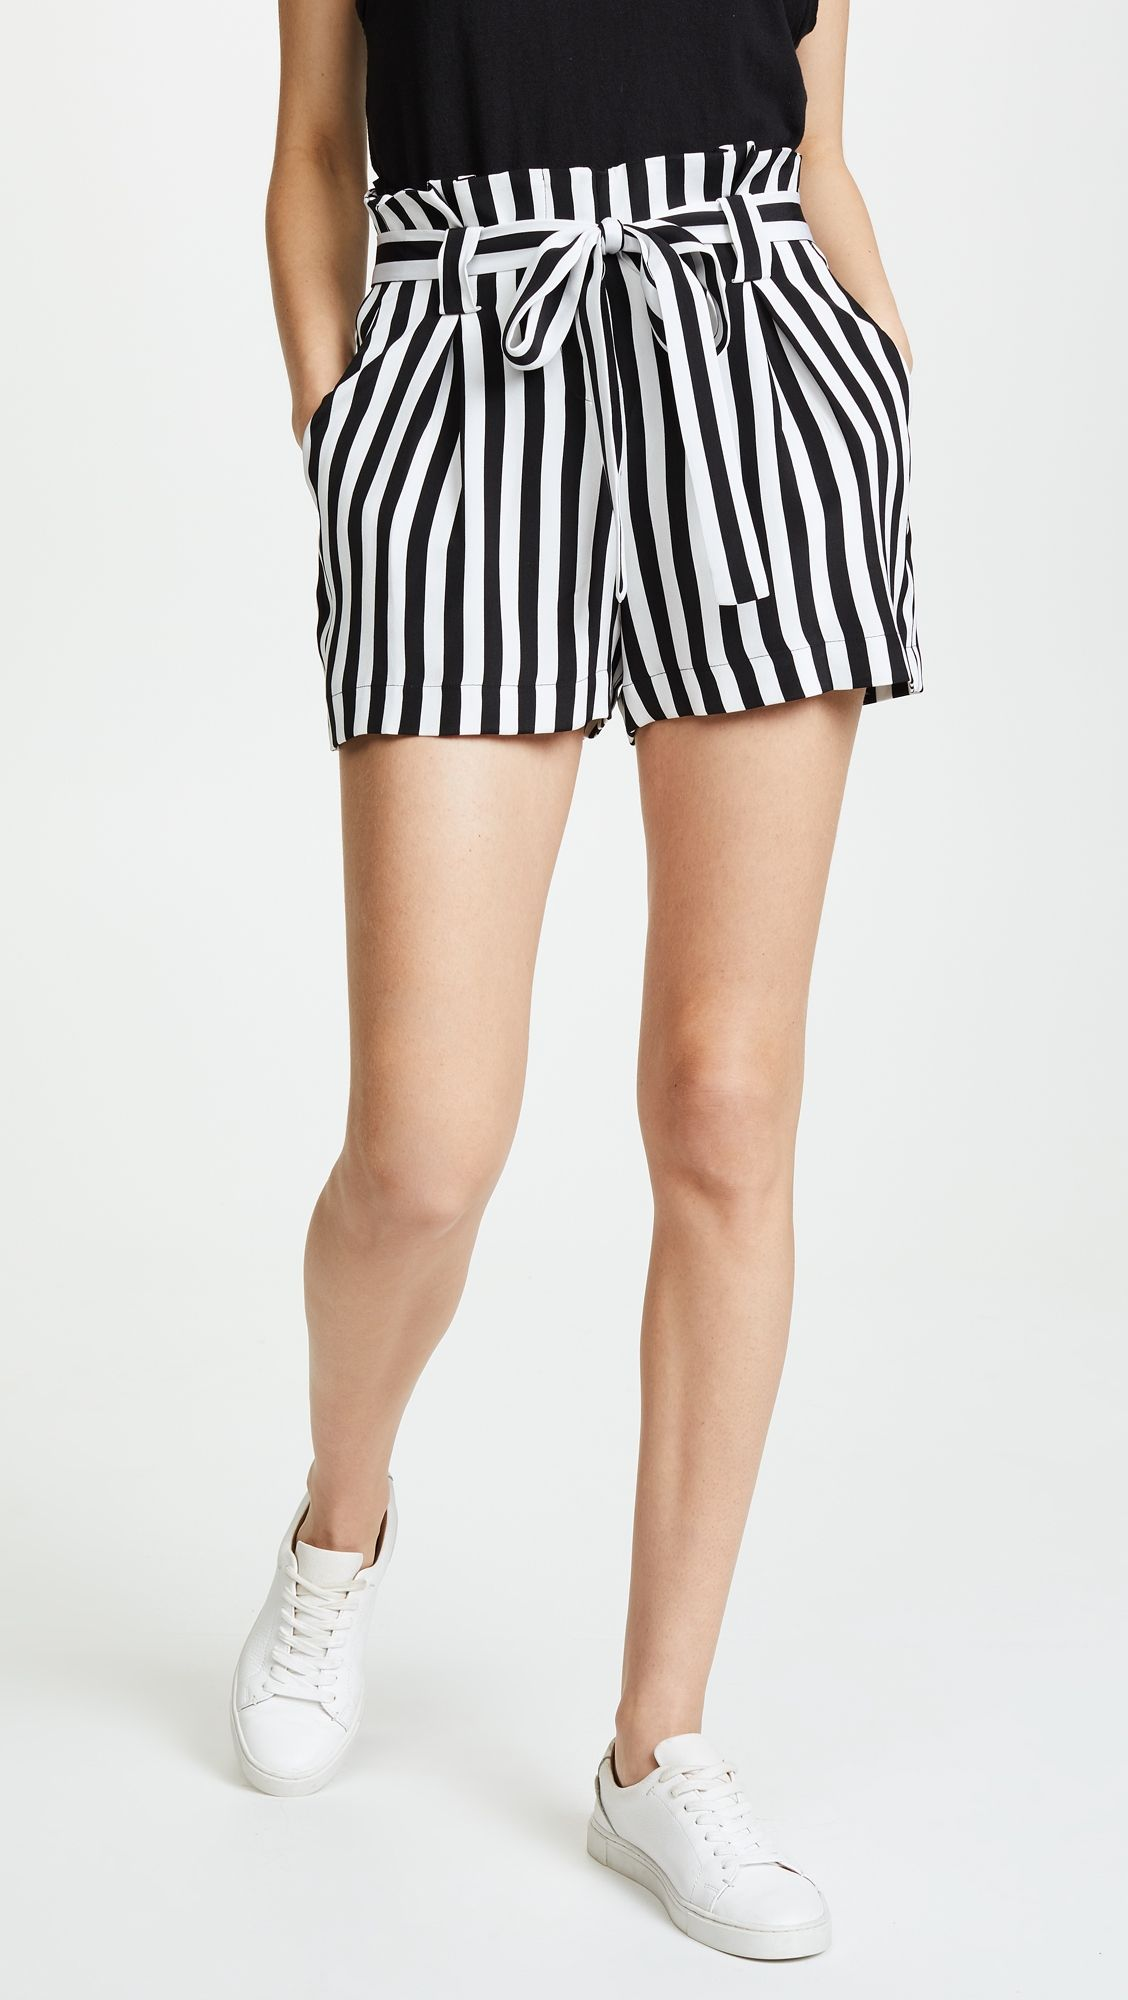 deedab2c L'AGENCE Alex Paper Bag Shorts Casual Attire, Casual Summer Outfits, Short  Outfits